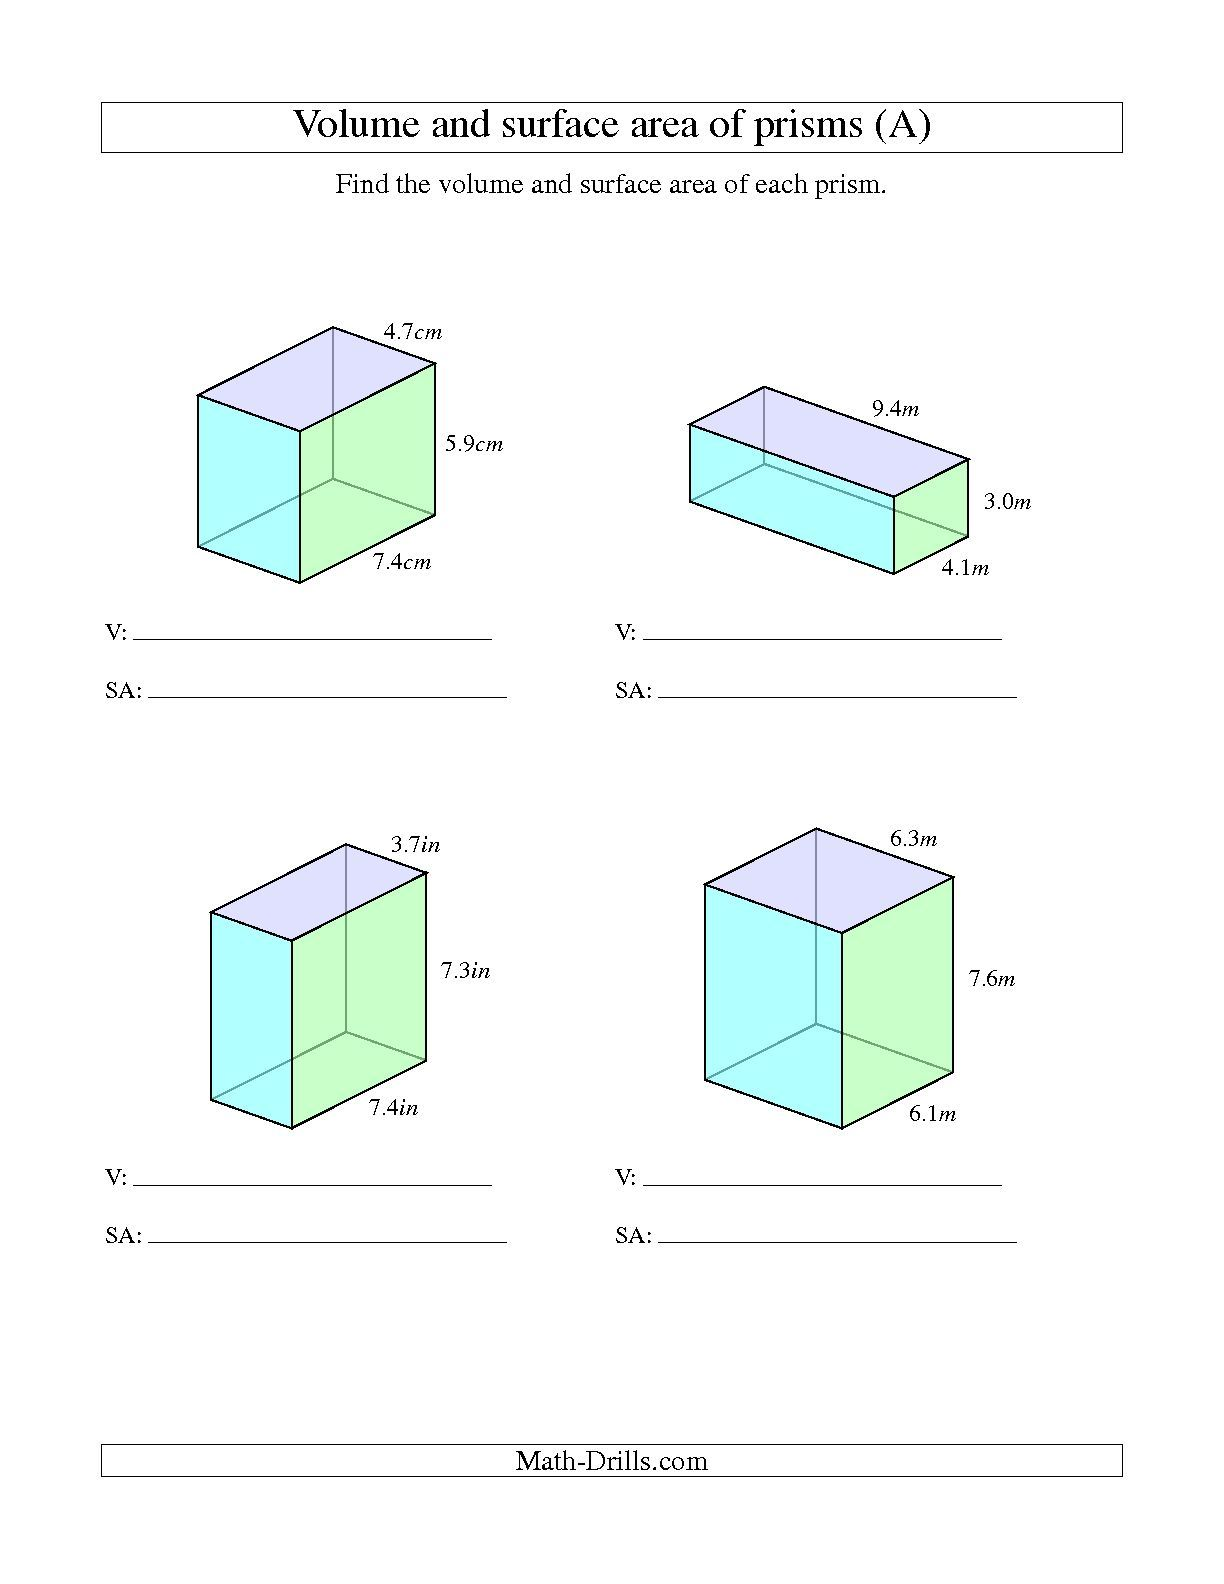 worksheet Surface Area Of A Prism Worksheet the volume and surface area of rectangular prisms with decimal numbers a math worksheet